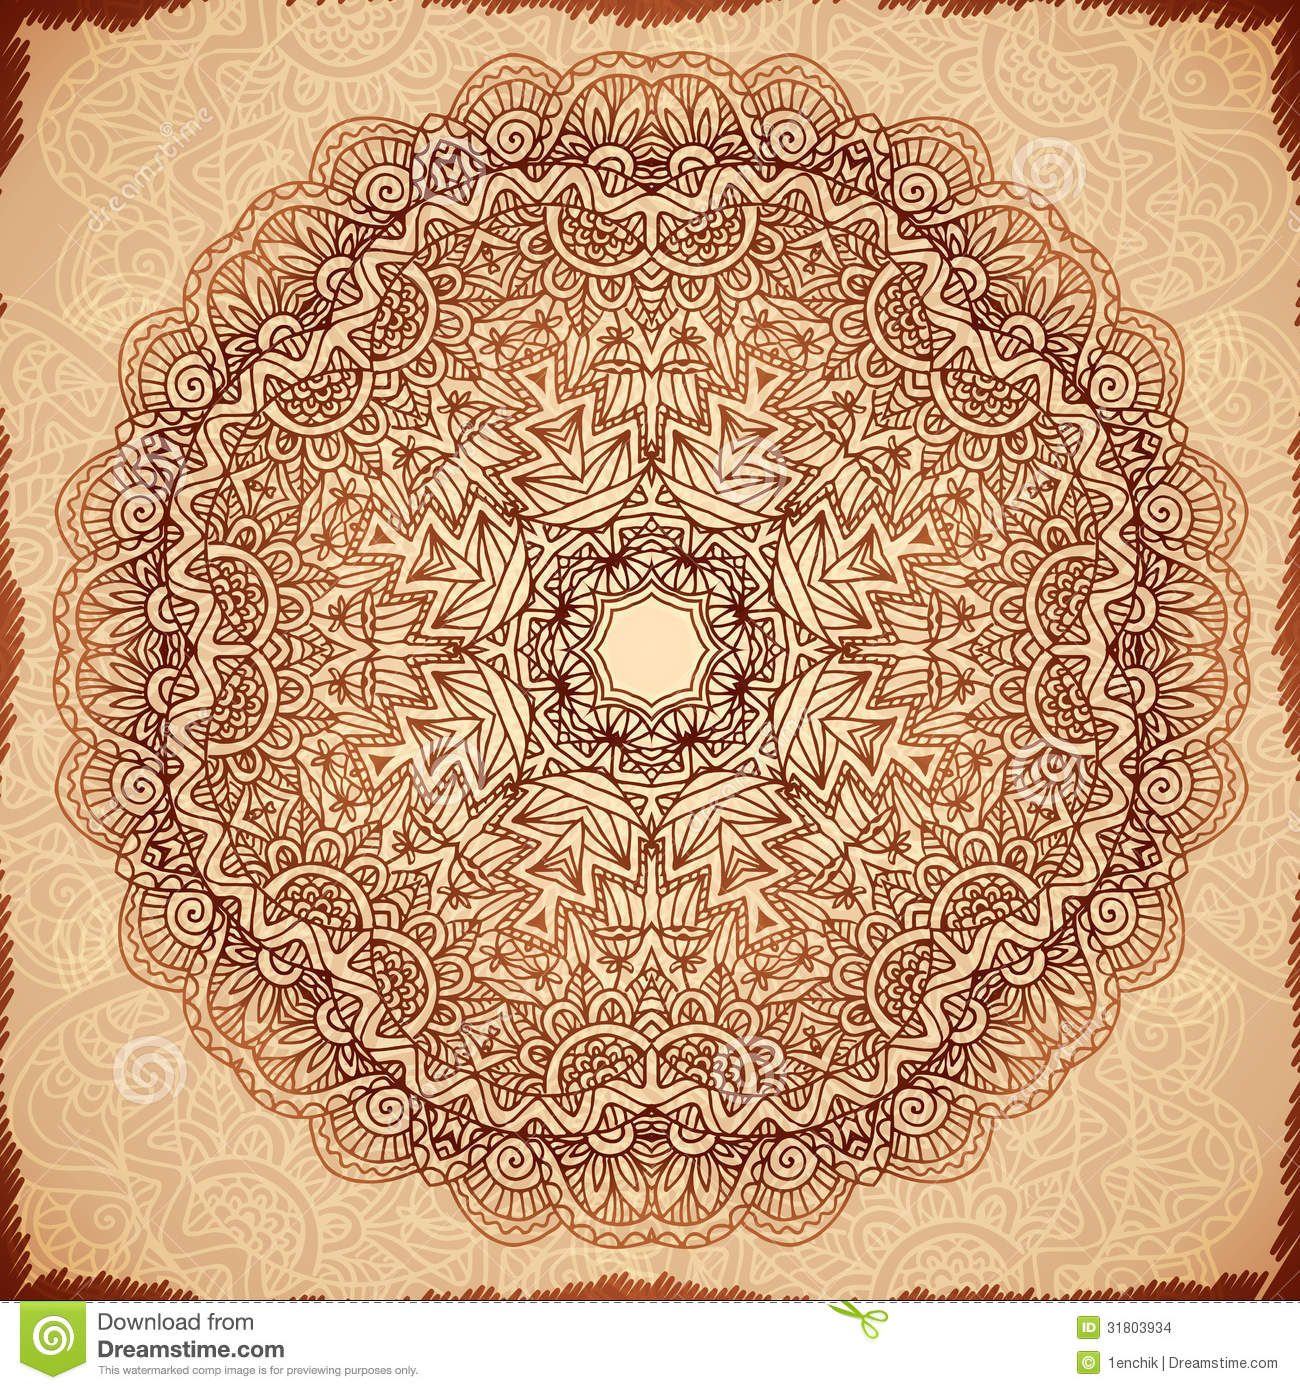 Ornate vintage vector background in mehndi style royalty free stock - Royalty Free Stock Photo Download Ornate Vintage Vector Napkin Background